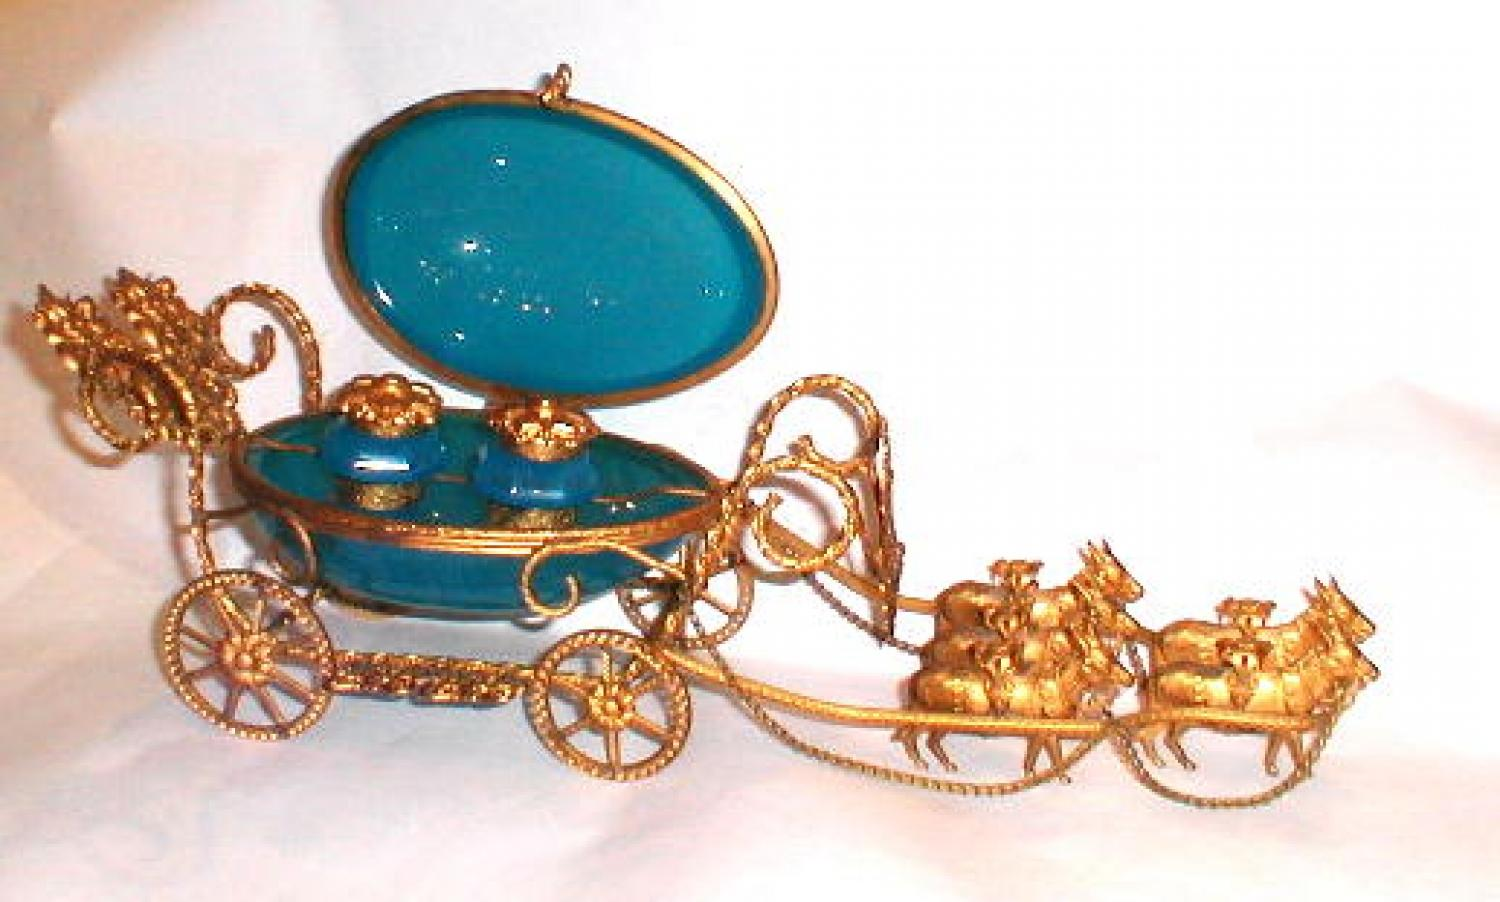 Antique Opaline Glass Carriage